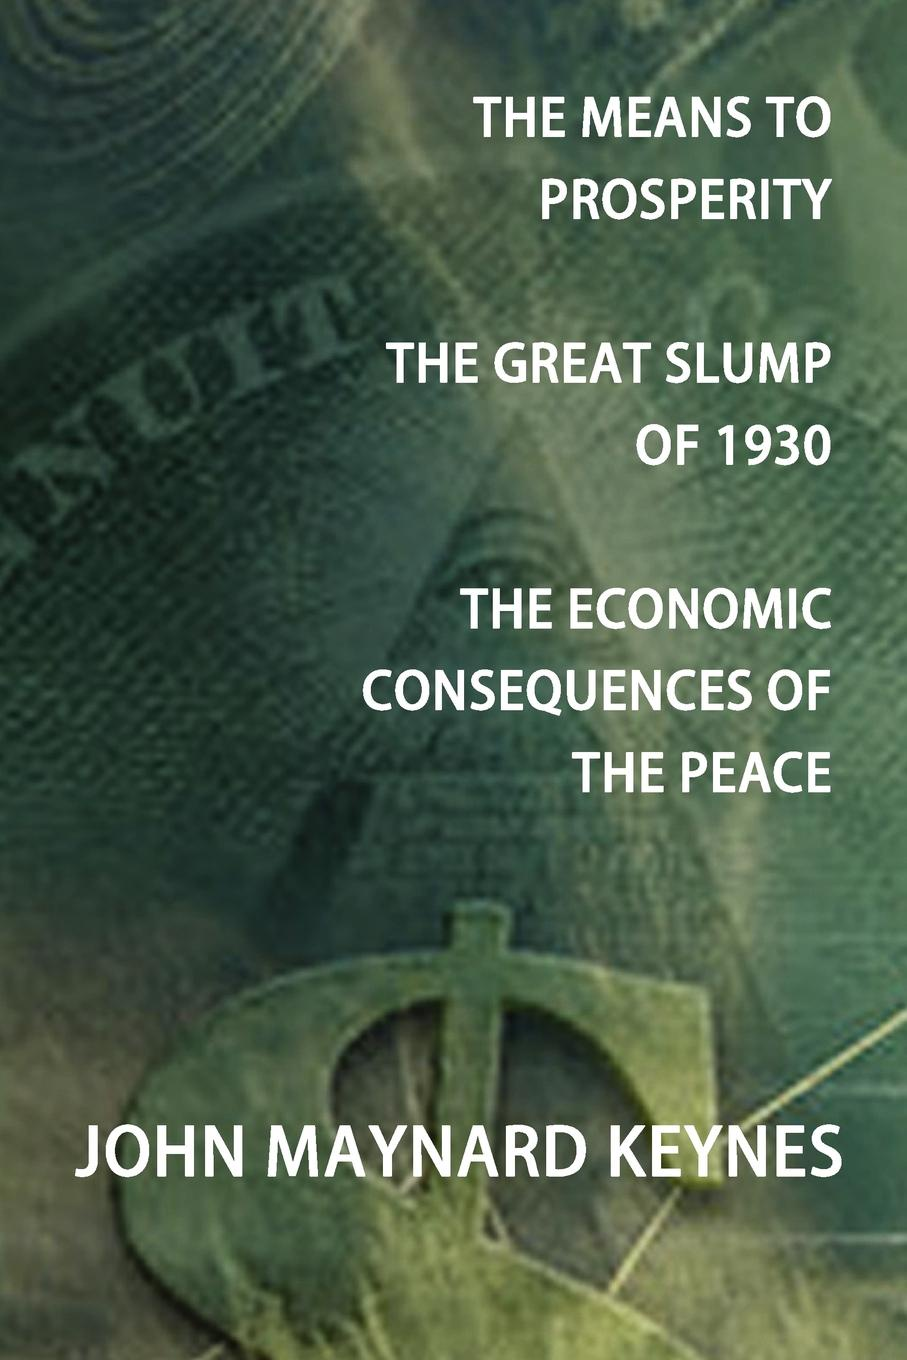 John Maynard Keynes The Means to Prosperity, the Great Slump of 1930, the Economic Consequences of the Peace lina laubisch debate about alternative monetary systems silvio gesell john maynard keynes irving fisher